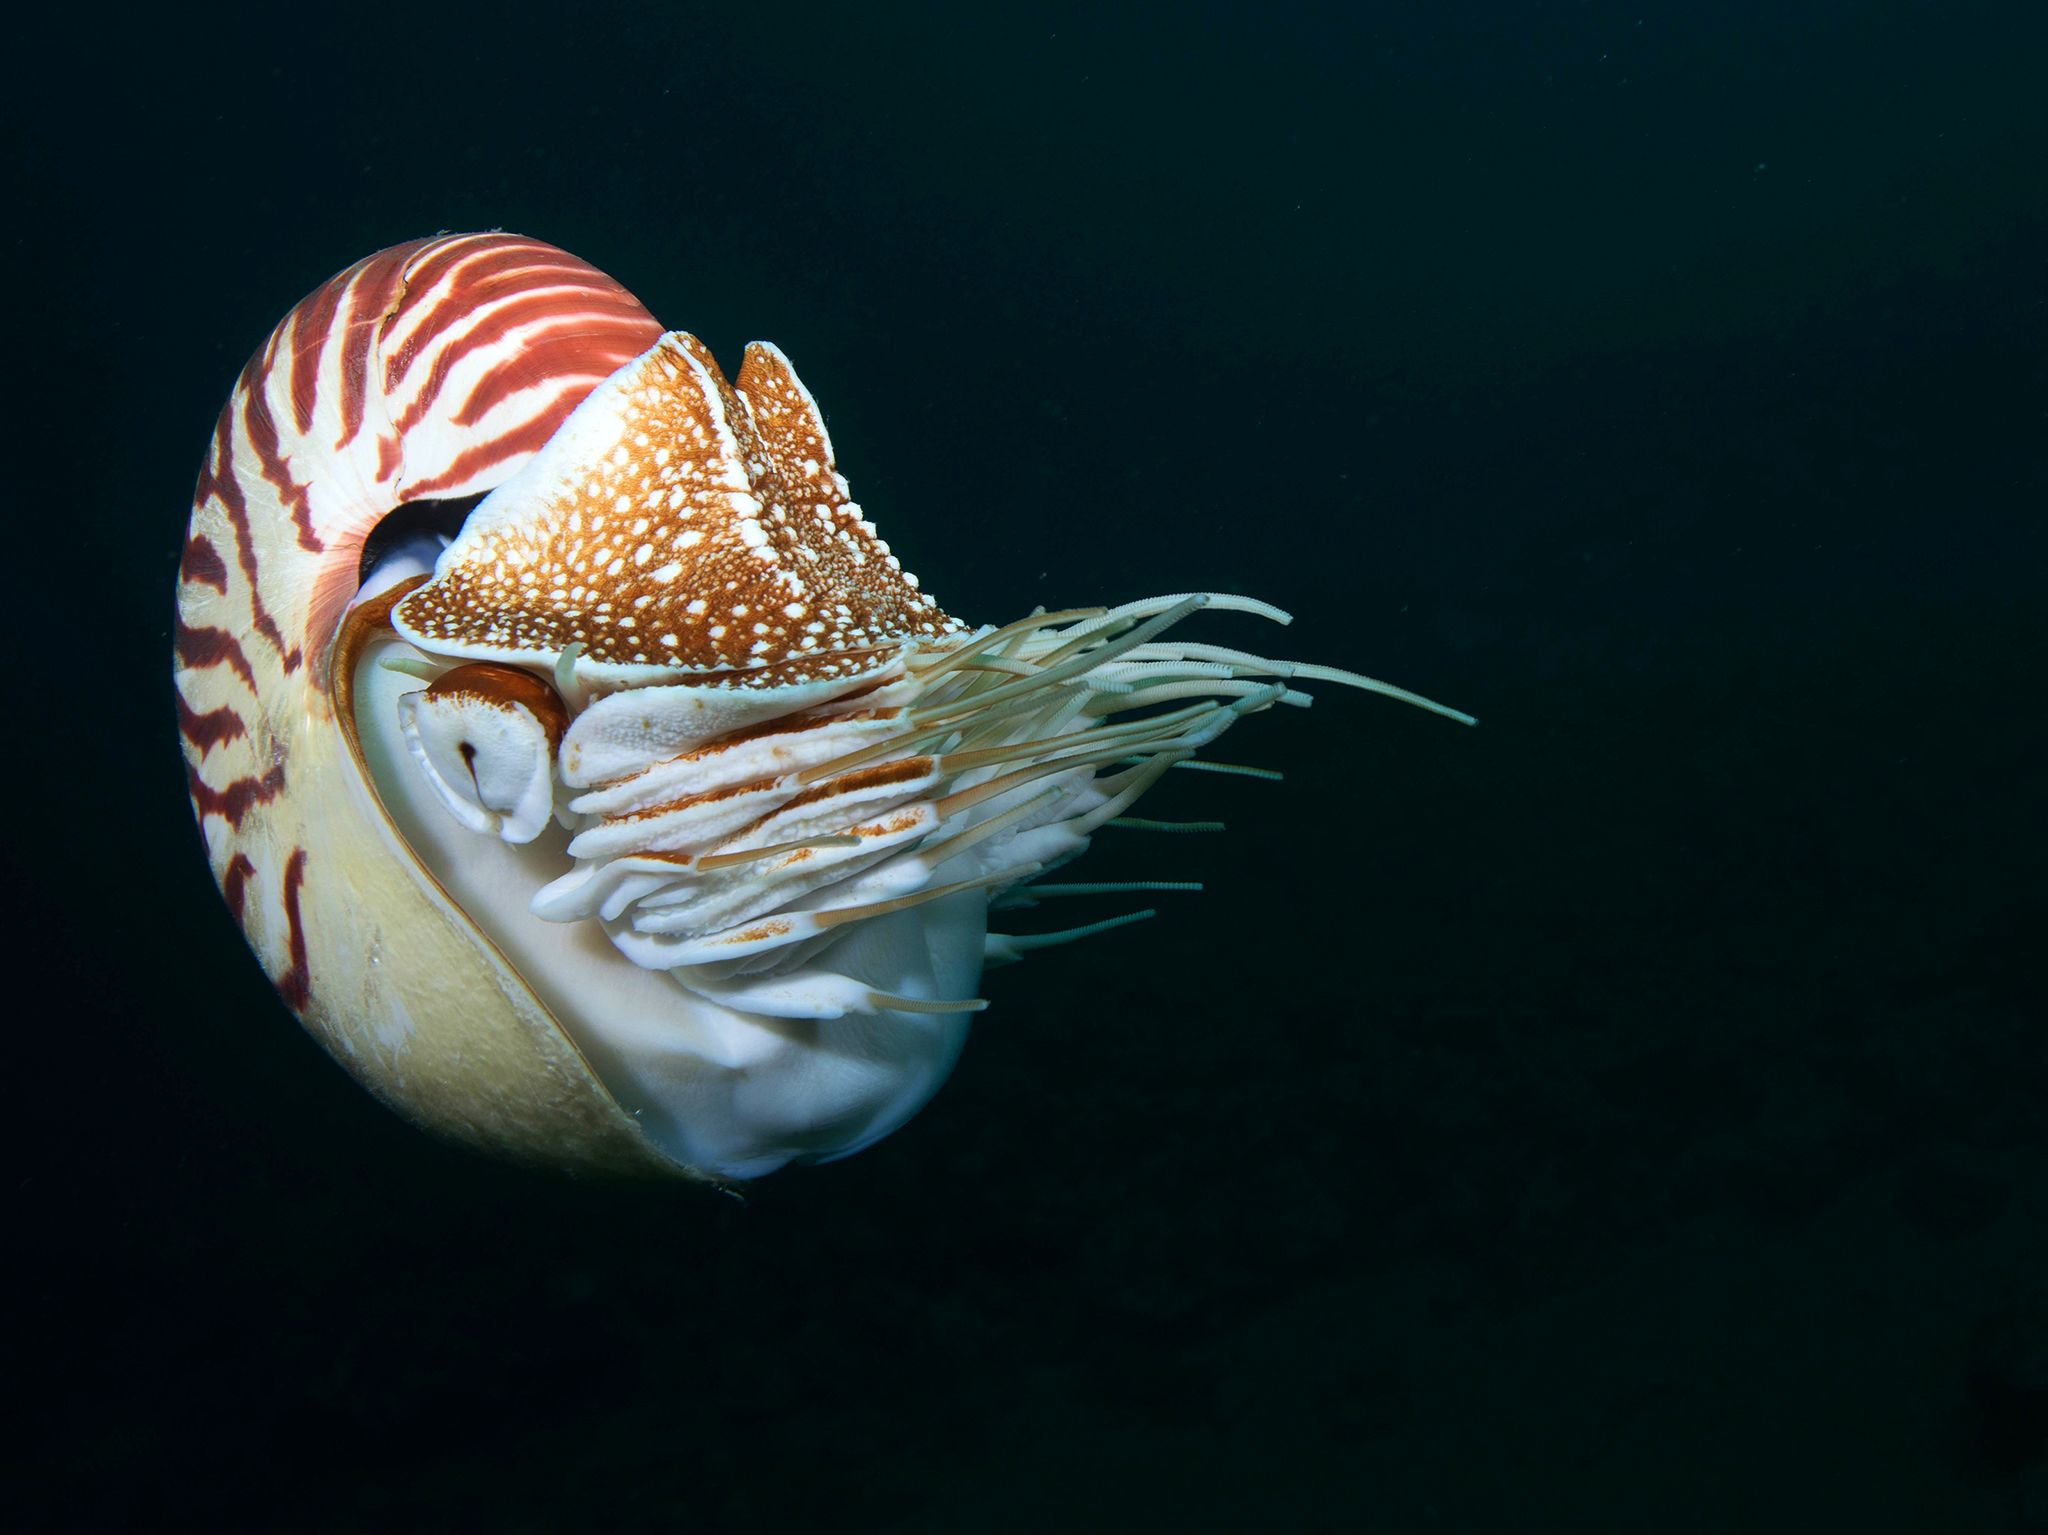 Chambered nautilus.  This image is from Untamed Philippines. [Photo of the day - June 2019]